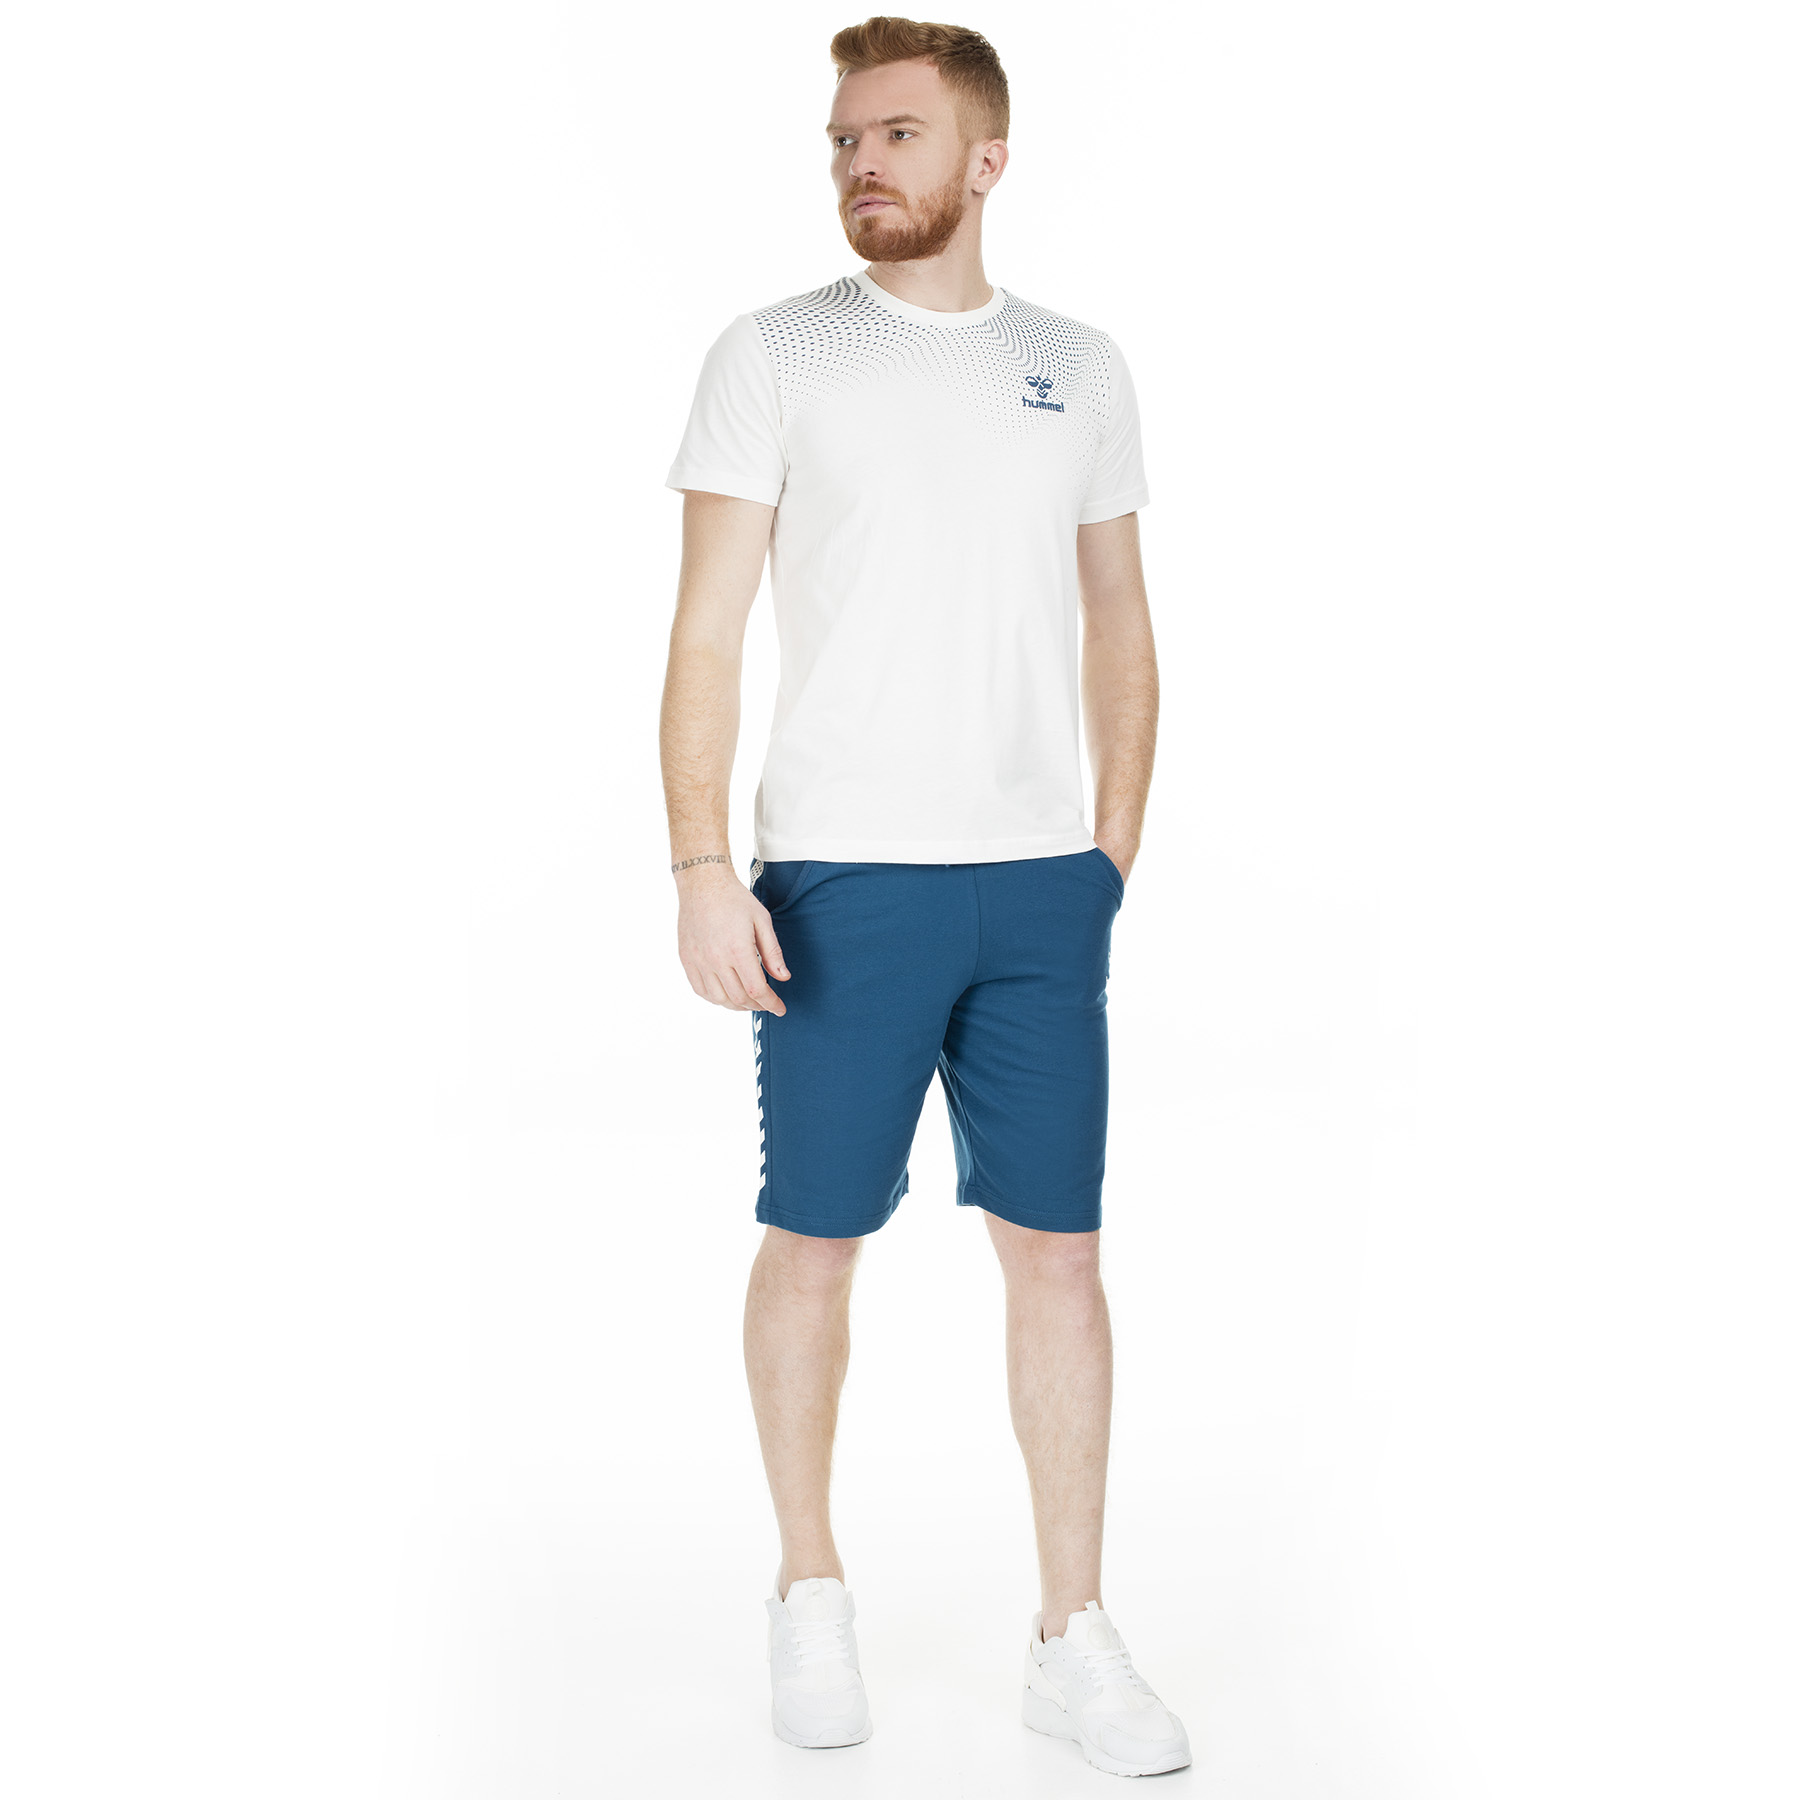 Hummel Articulated Gusset Shorts MALE SHORTS 930846